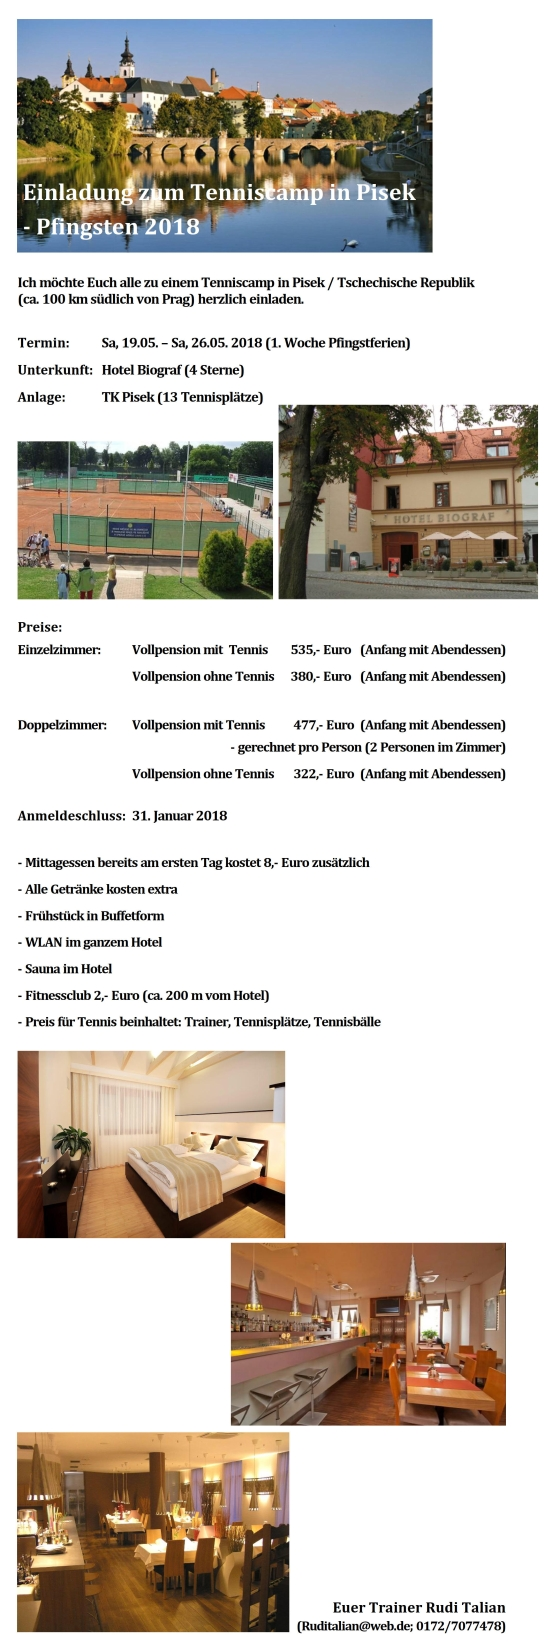 Einladung Tenniscamp in Pisek 2018